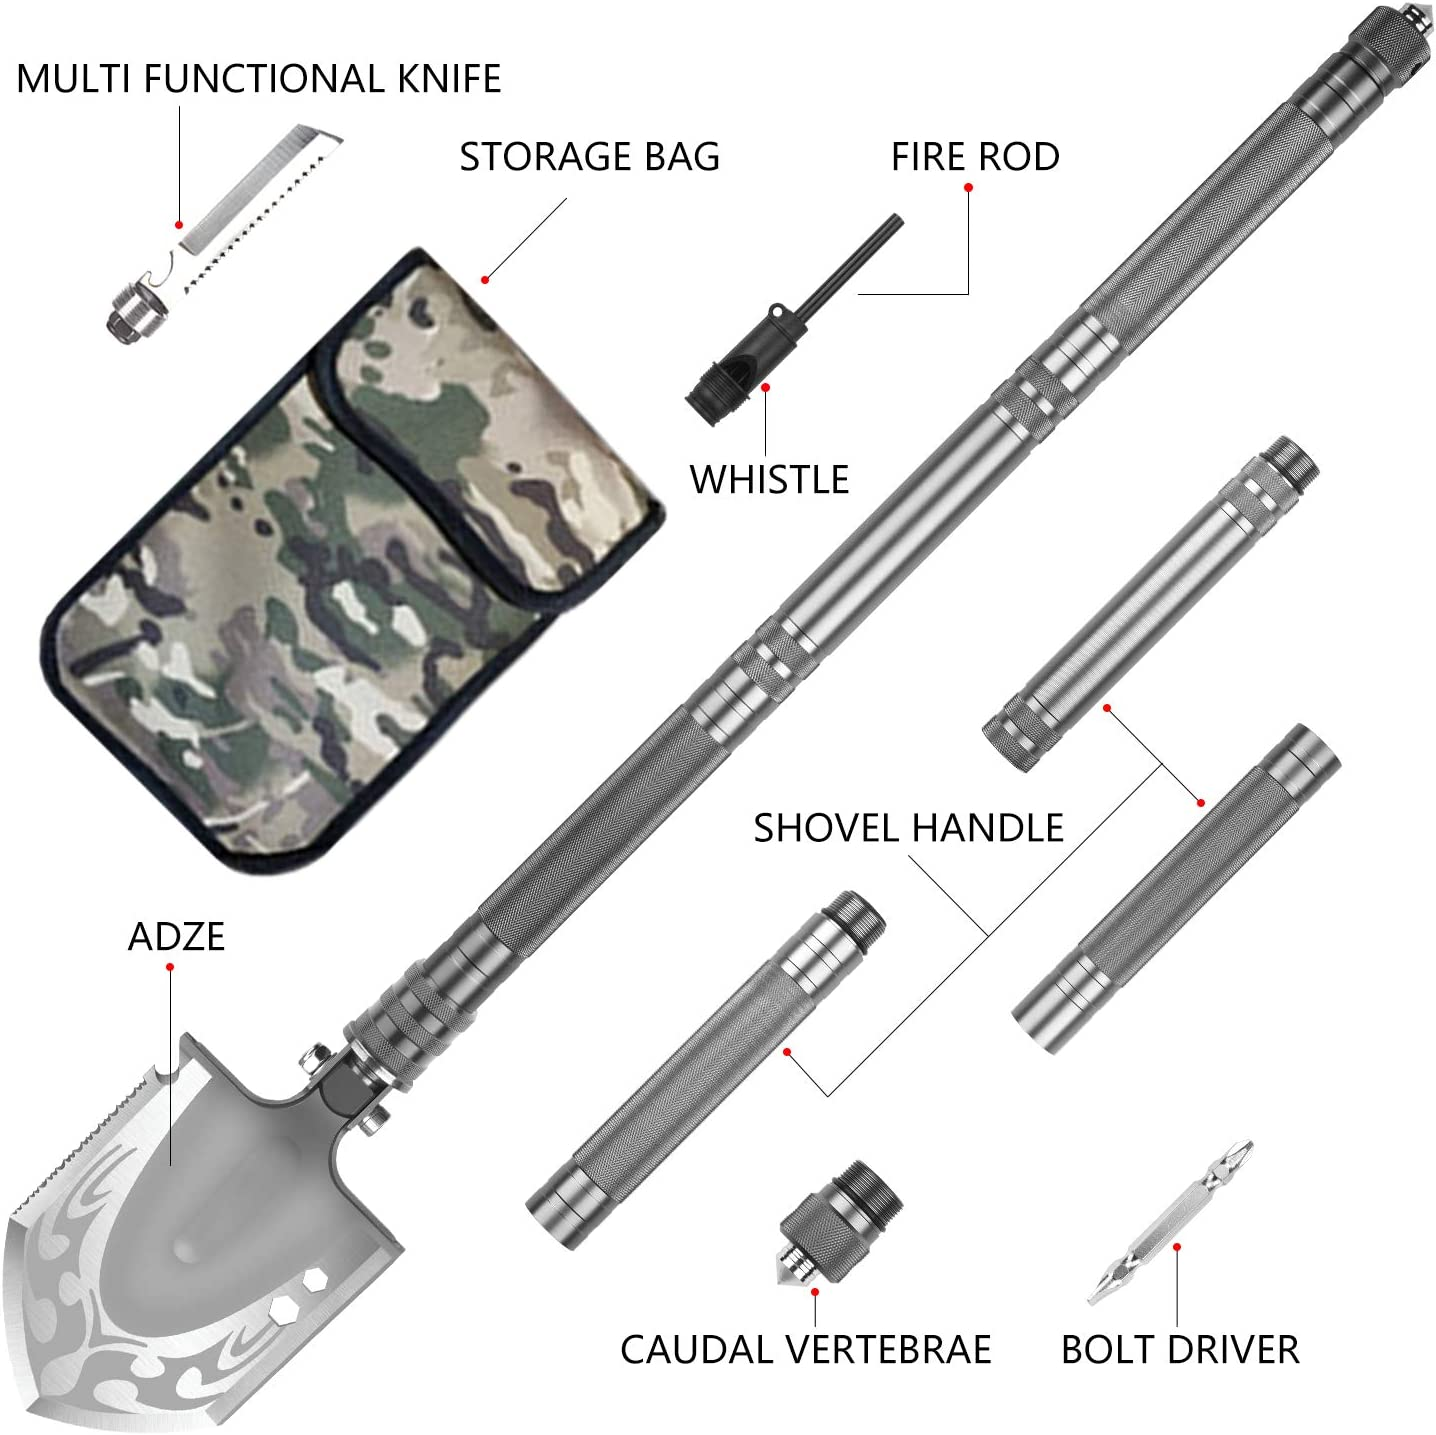 Car Emergency PAVEHAWK Military Folding Shovel Portable Survival Multitool Tactical Entrenching Tool Compact Backpacking for Hunting Hiking Fishing Gardening Camping